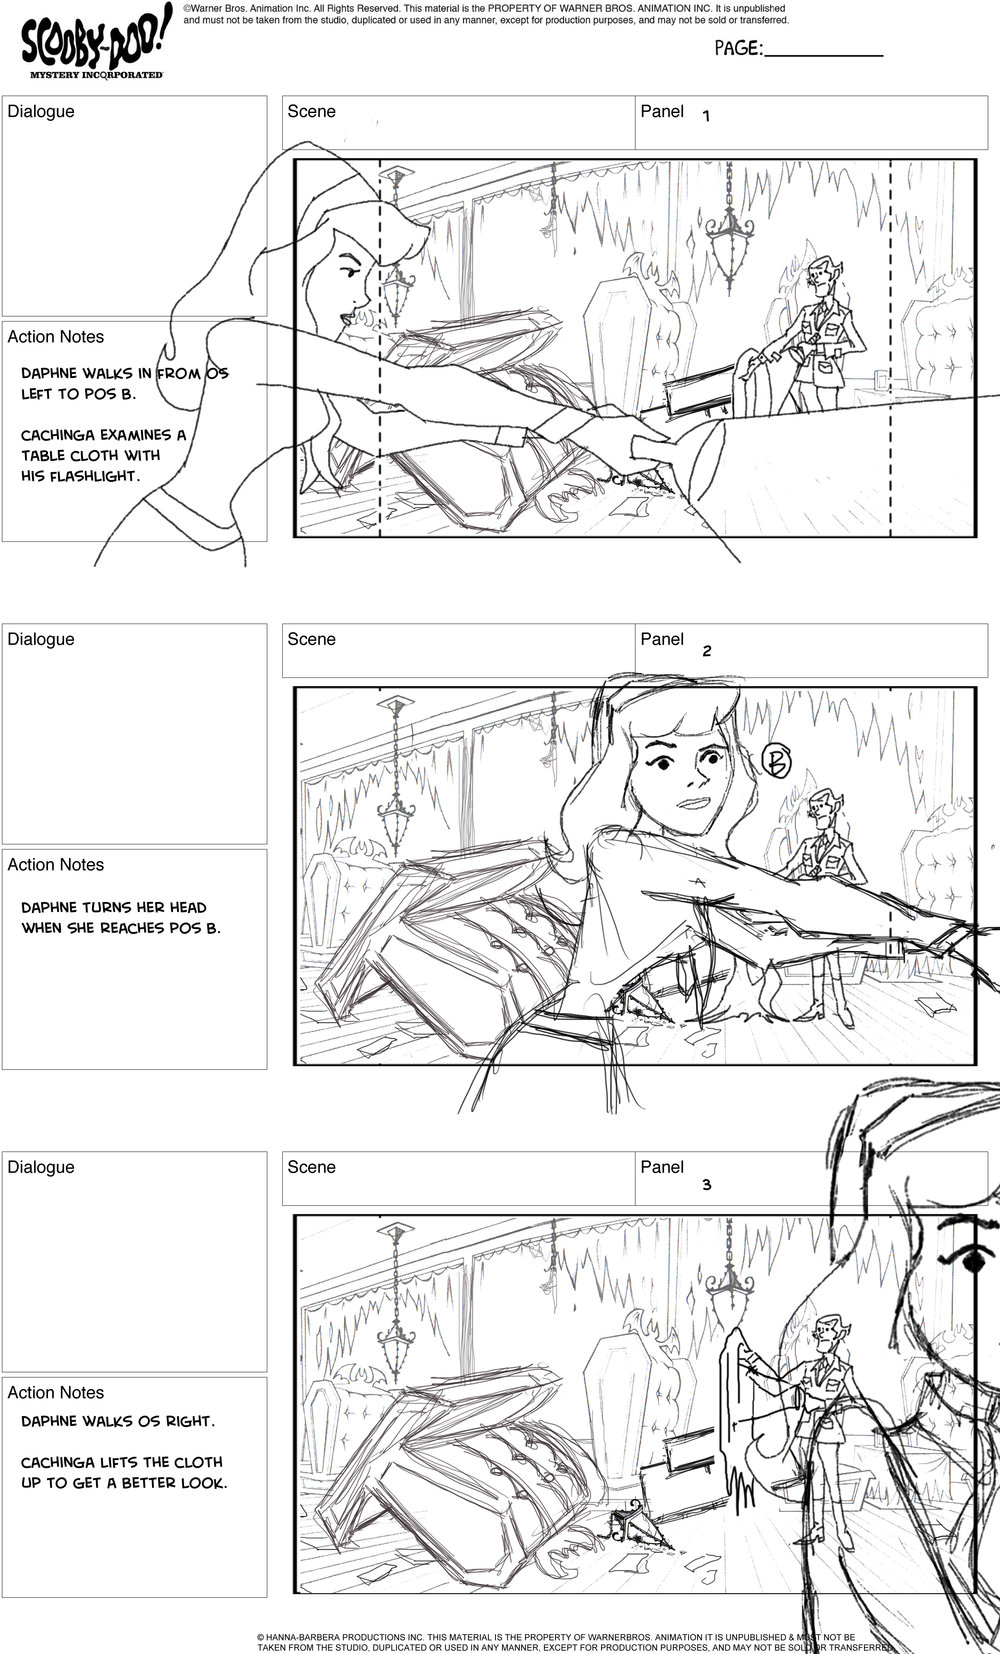 Scooby Storyboard page 14.jpg